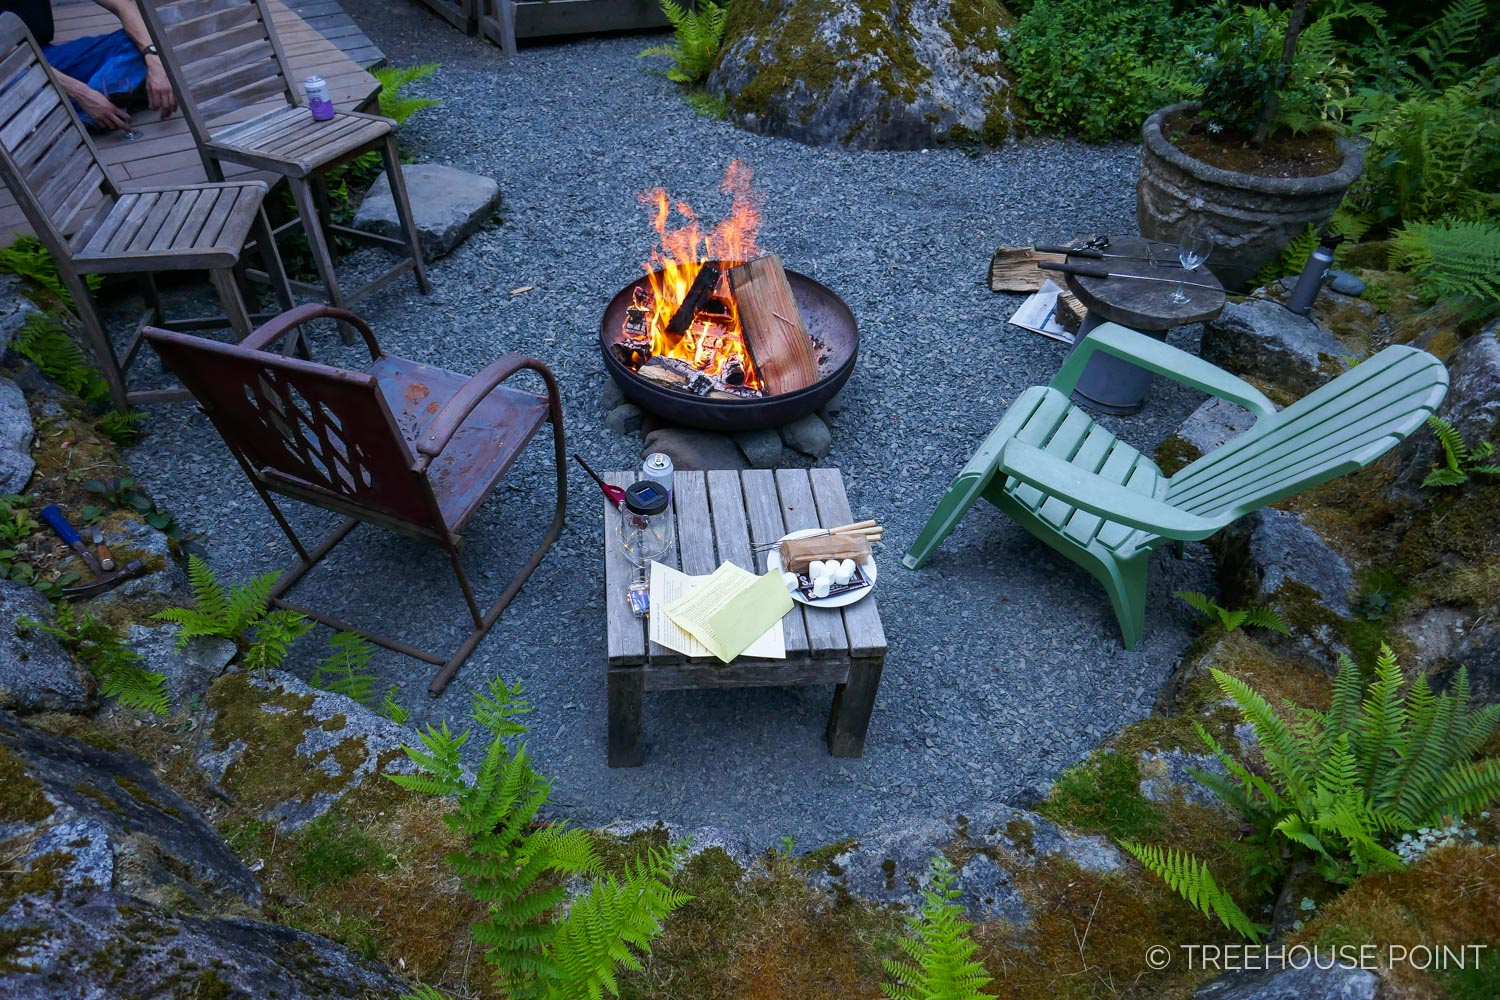 on clear nights, guests gather for s'mores and stargazing at the fire pit next to the lodge.